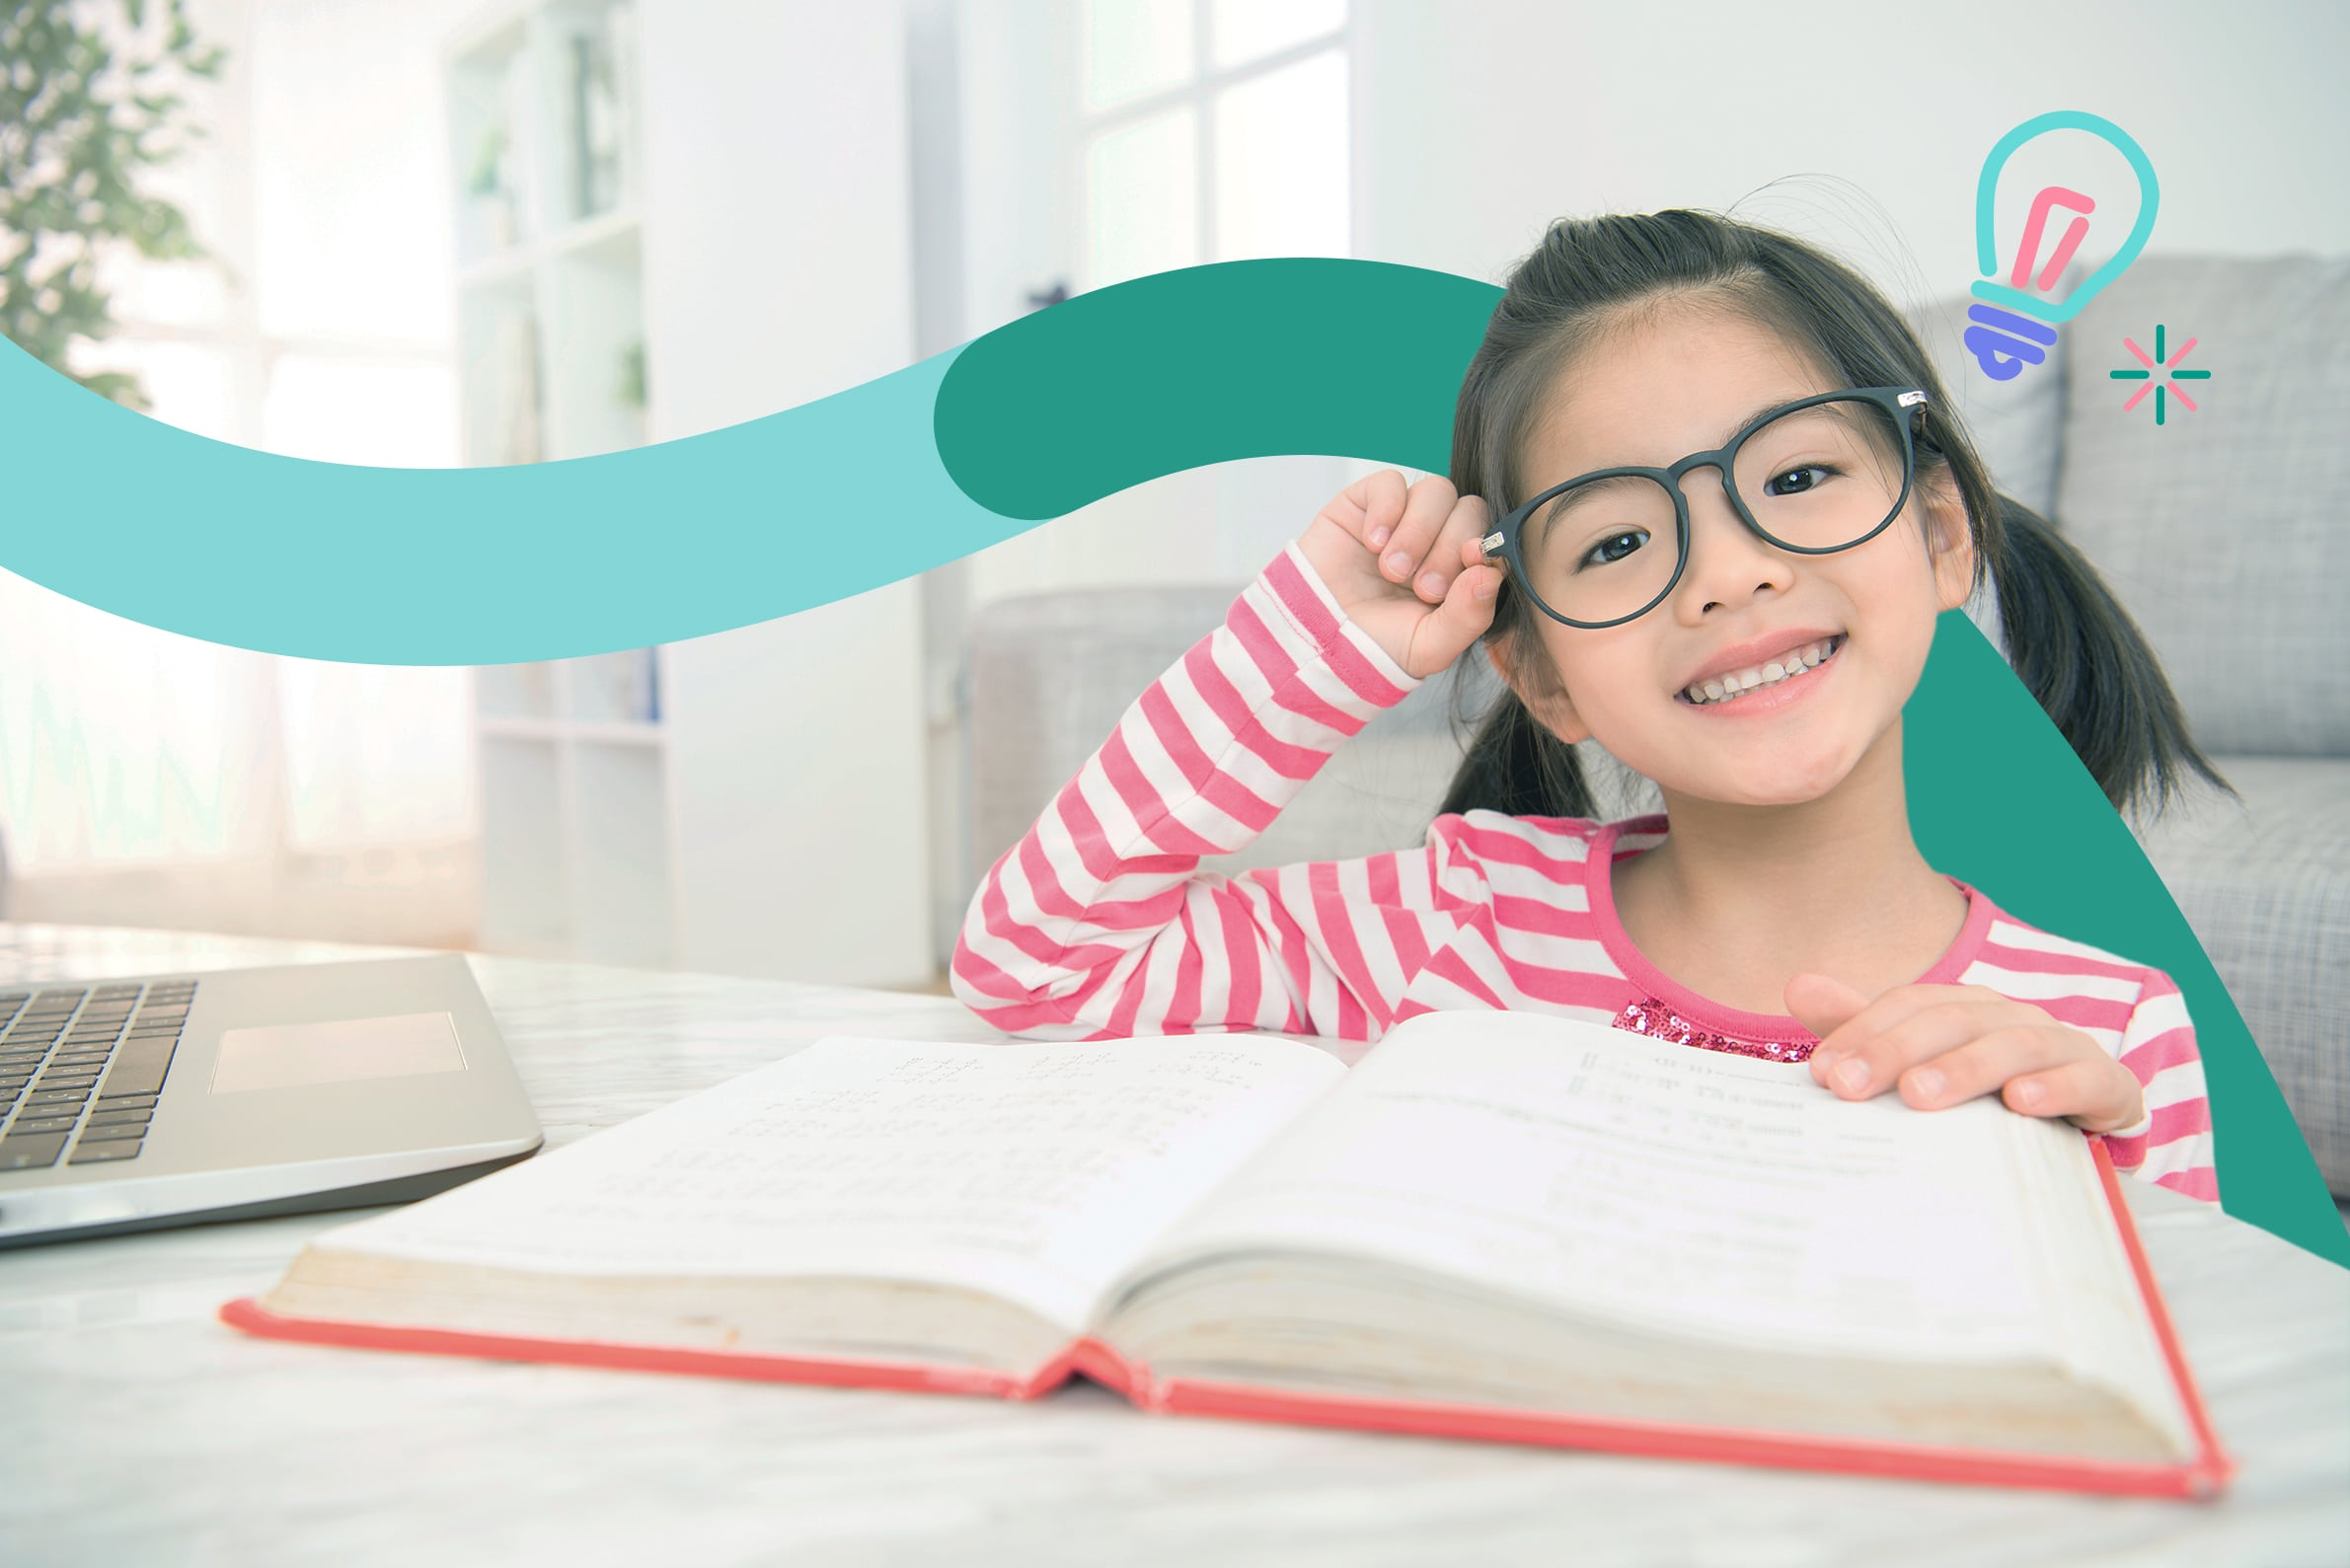 A bespectacled girl enjoys learning Chinese